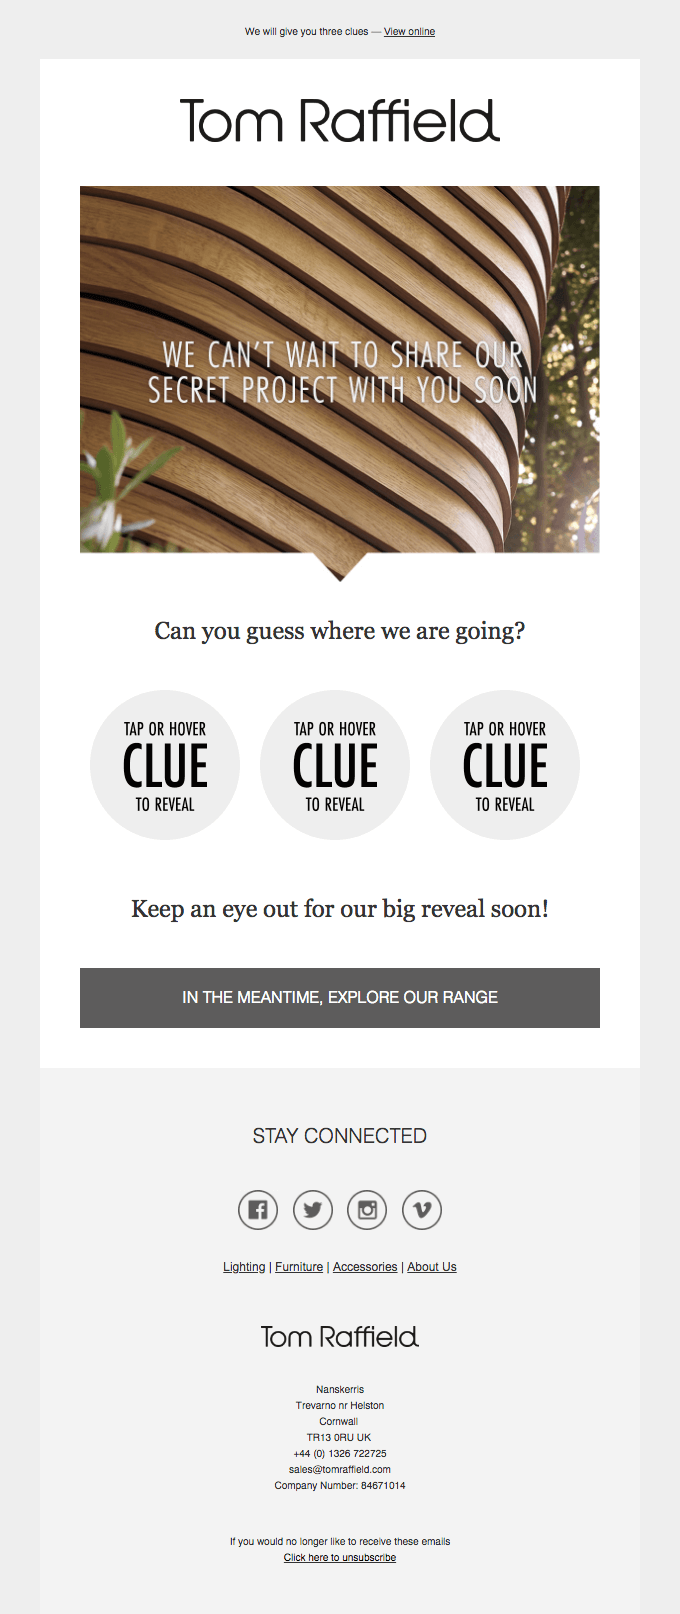 This email from Tom Raffield includes interactive content in the form of a fun game. It just begs to be clicked.